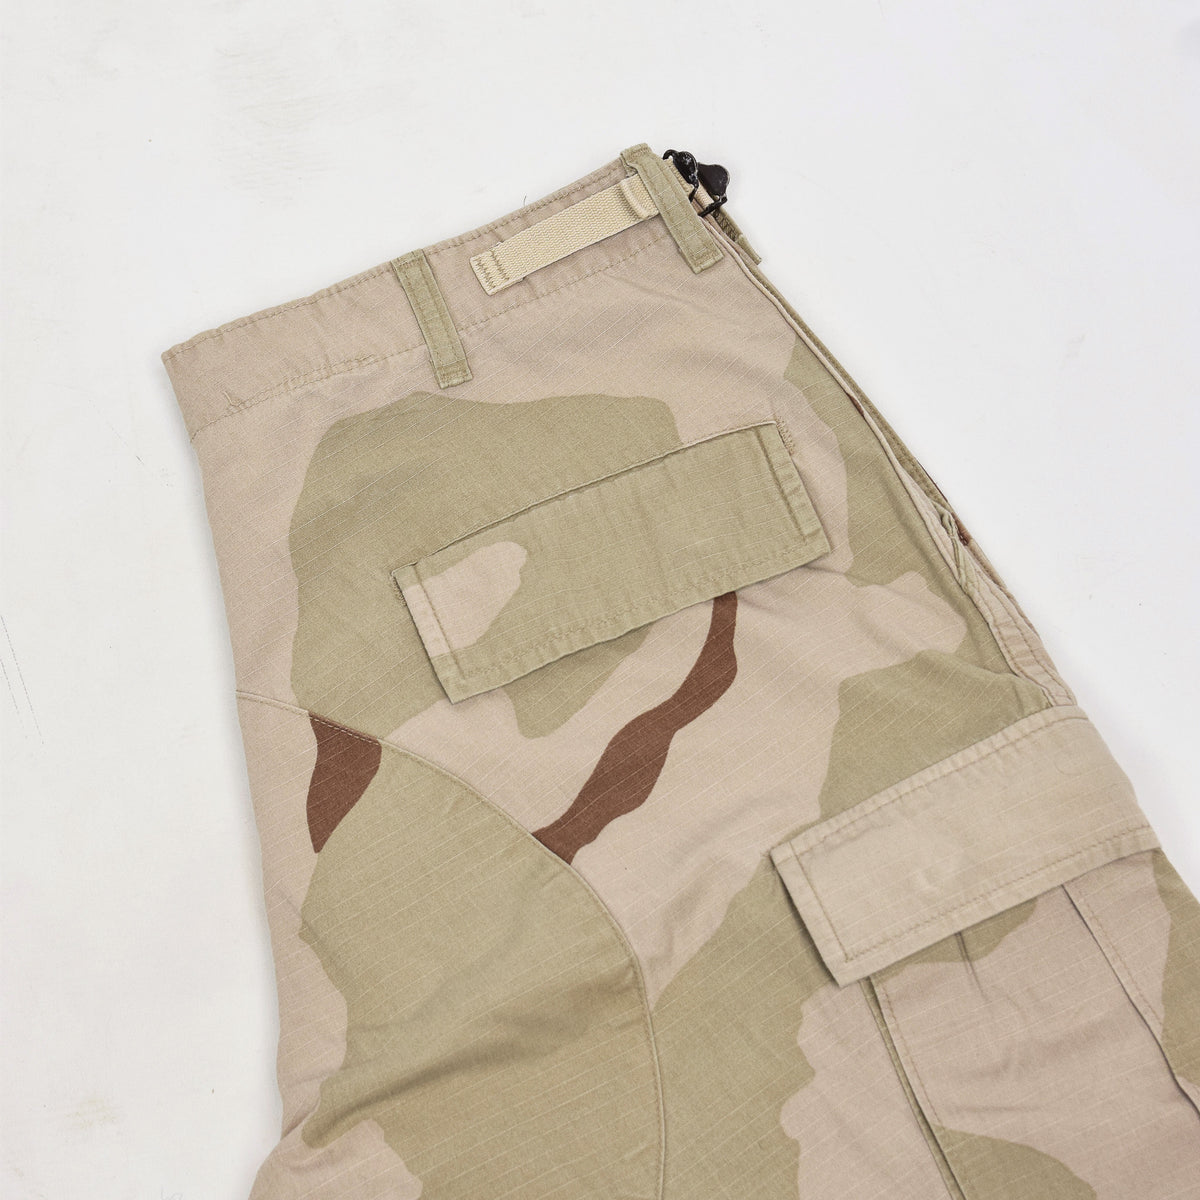 Vintage US Army Desert Camo Ripstop Cargo Combat Field Trousers M Short back pocket